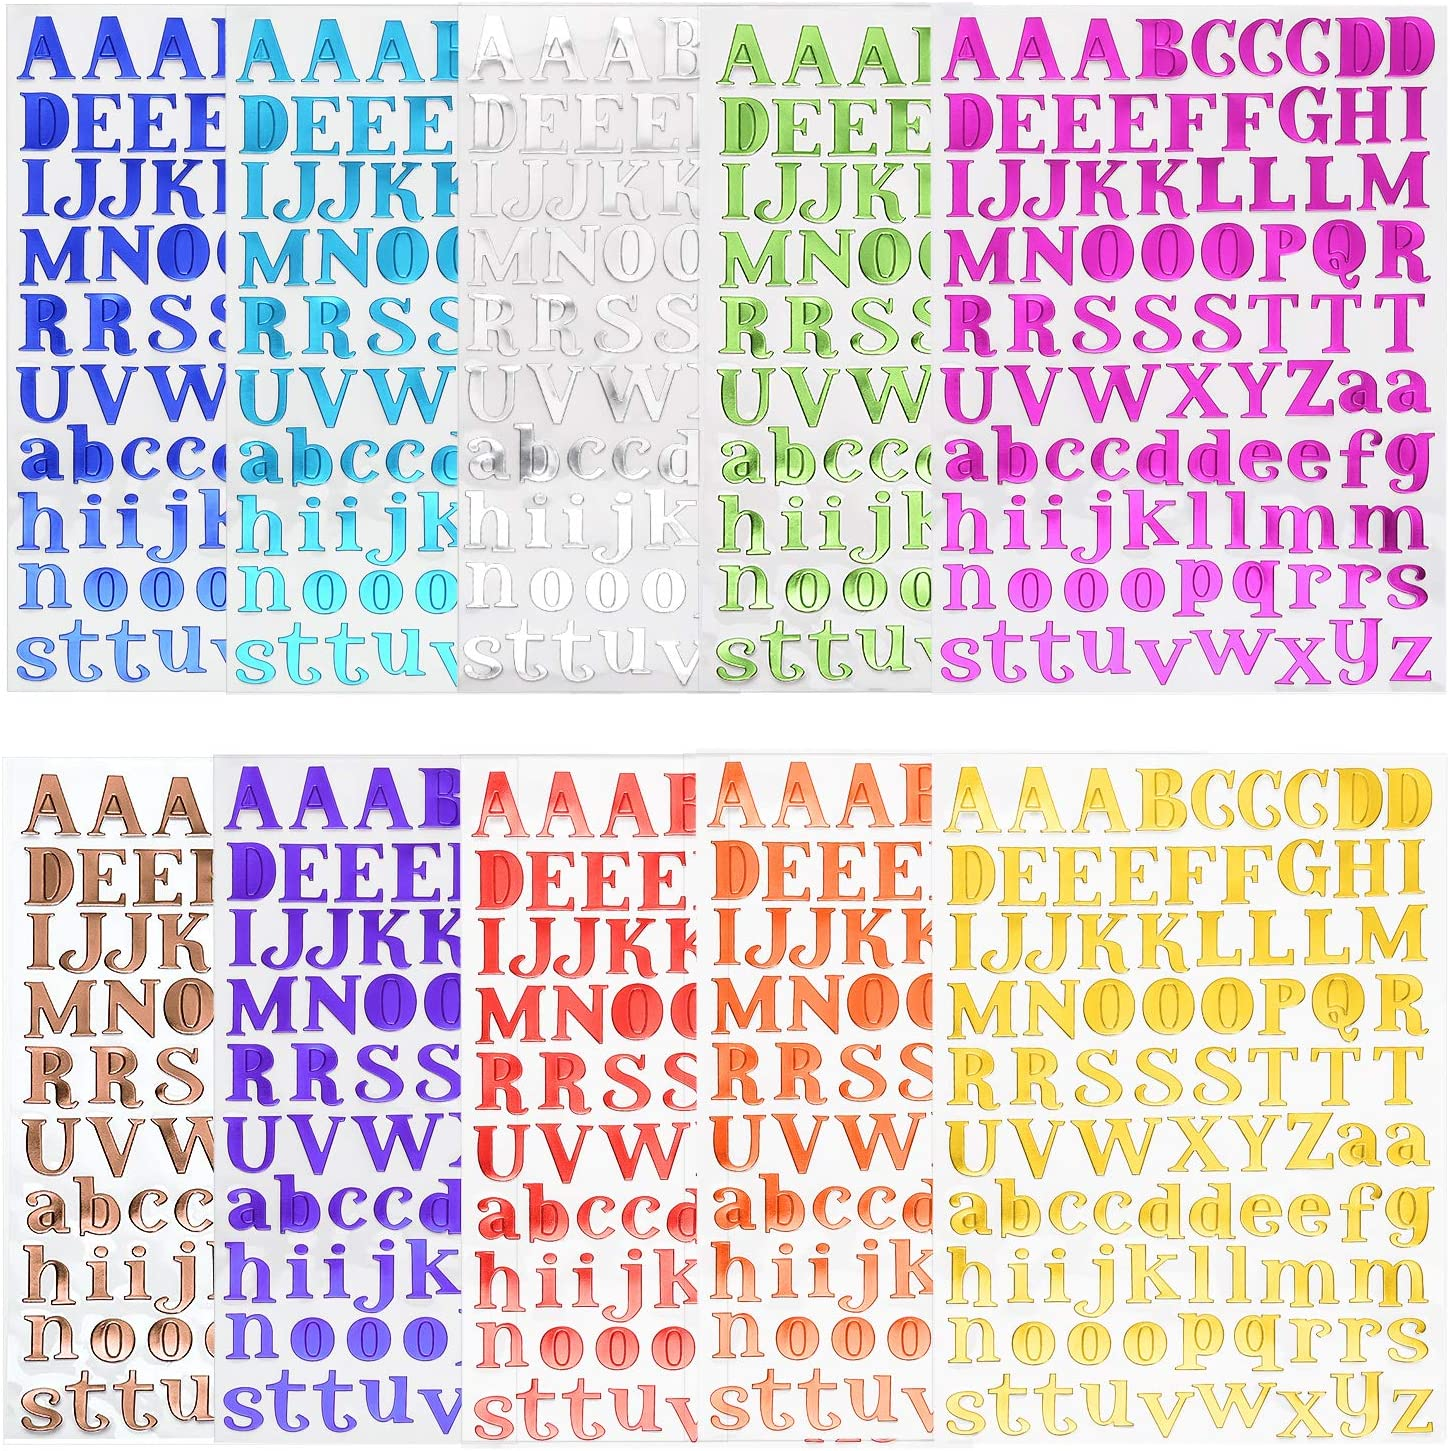 Noverlife 10 Sheets Colorful Self-Adhesive Alphabet Stickers, Uppercase & Lowercase Glitter Letter Stickers, Cardstock Kraft Alpha Stickers for DIY Papercraft Scrapbook Home Decor Kids Education